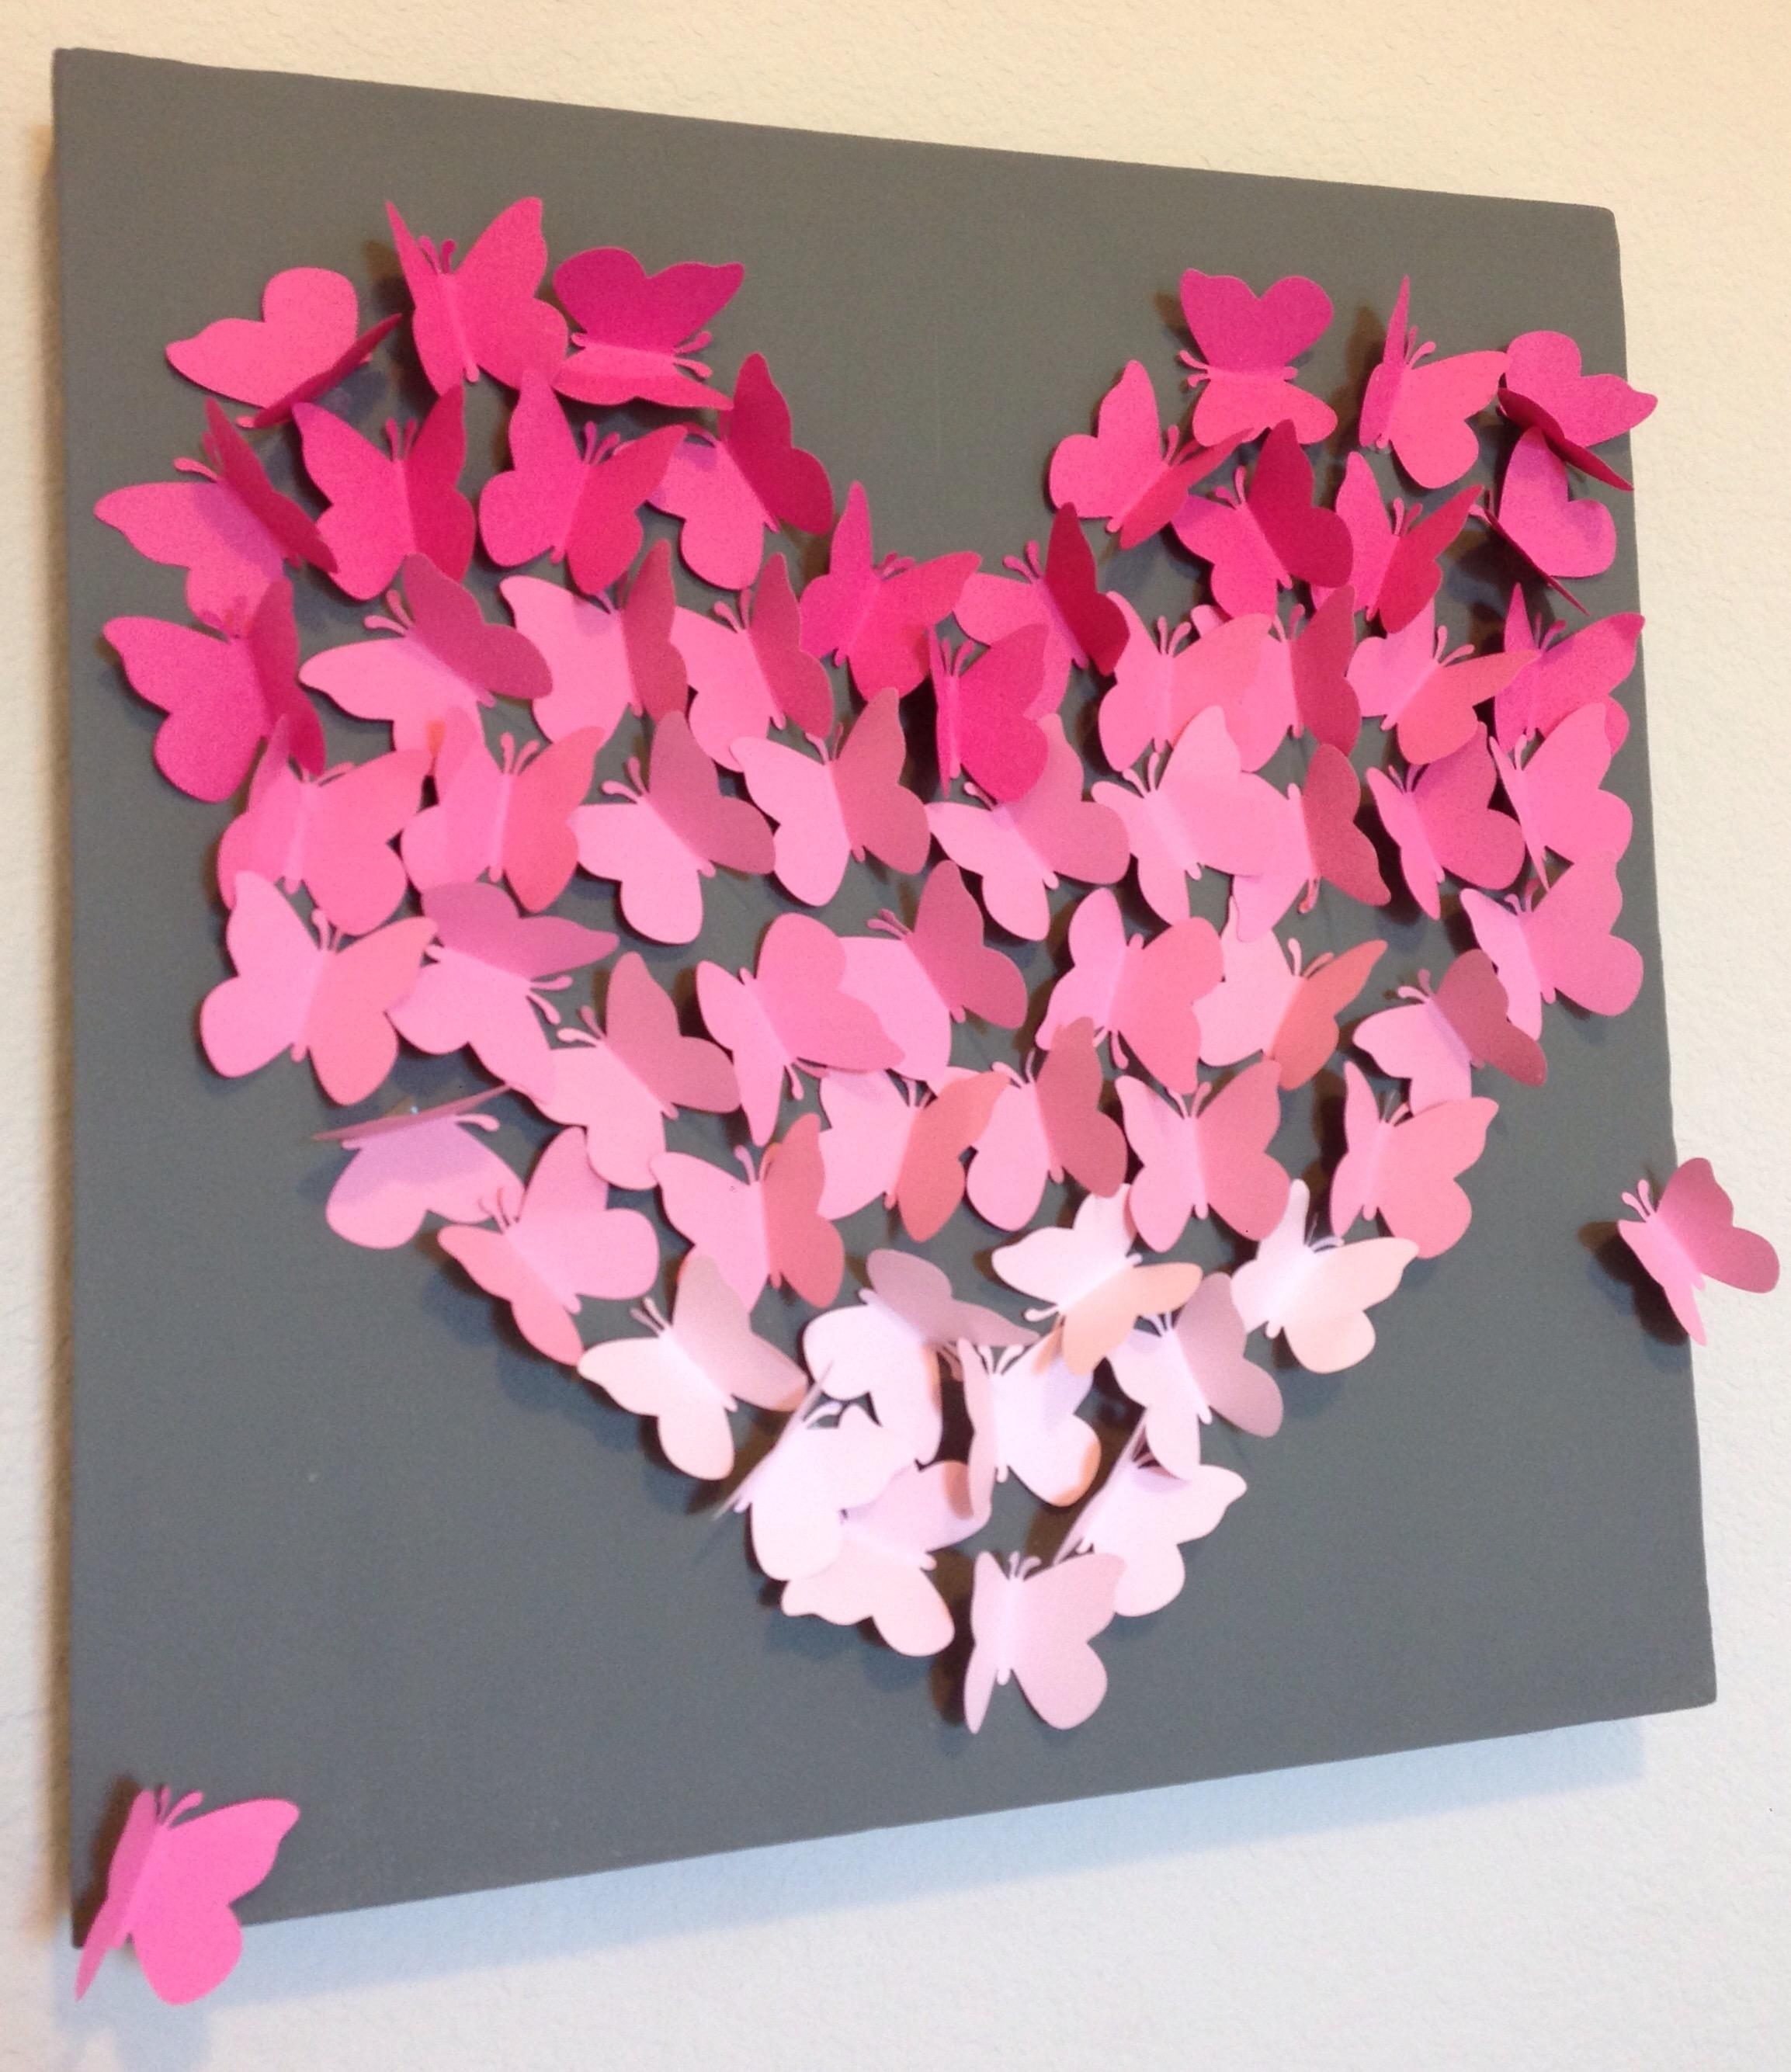 Diy Ombre Butterfly Wall Art Within Pink Butterfly Wall Art (Image 14 of 20)